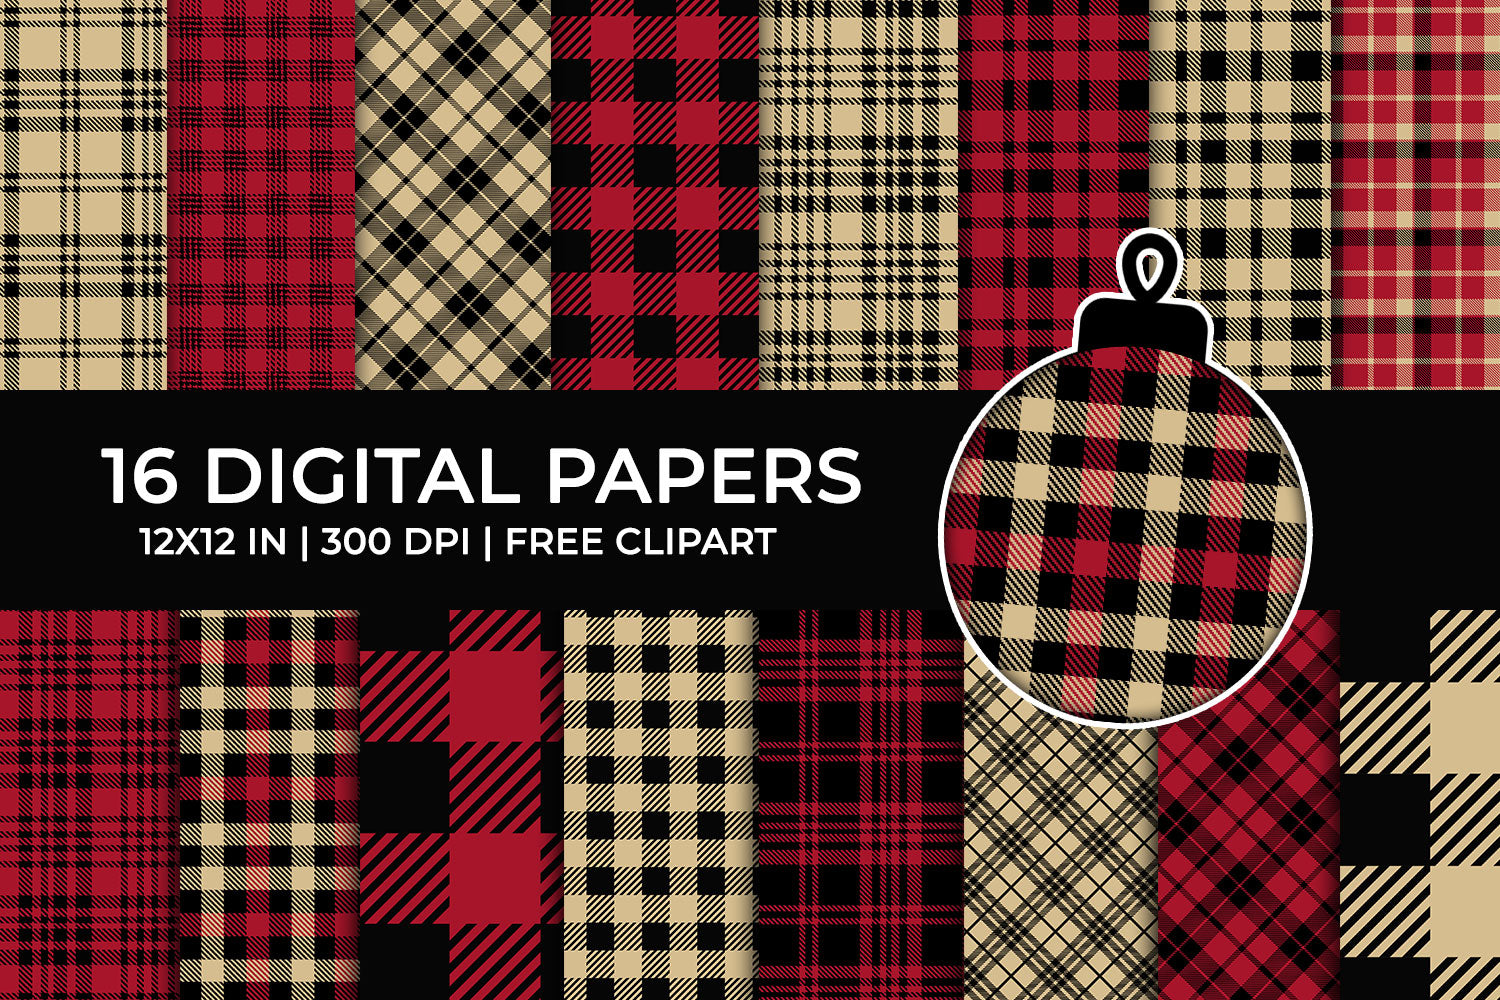 Lumberjack Plaid Digital Papers Set, Tartan Papers, Gingham Backgrounds, Red and Beige Commercial Use [INSTANT DOWNLOAD]